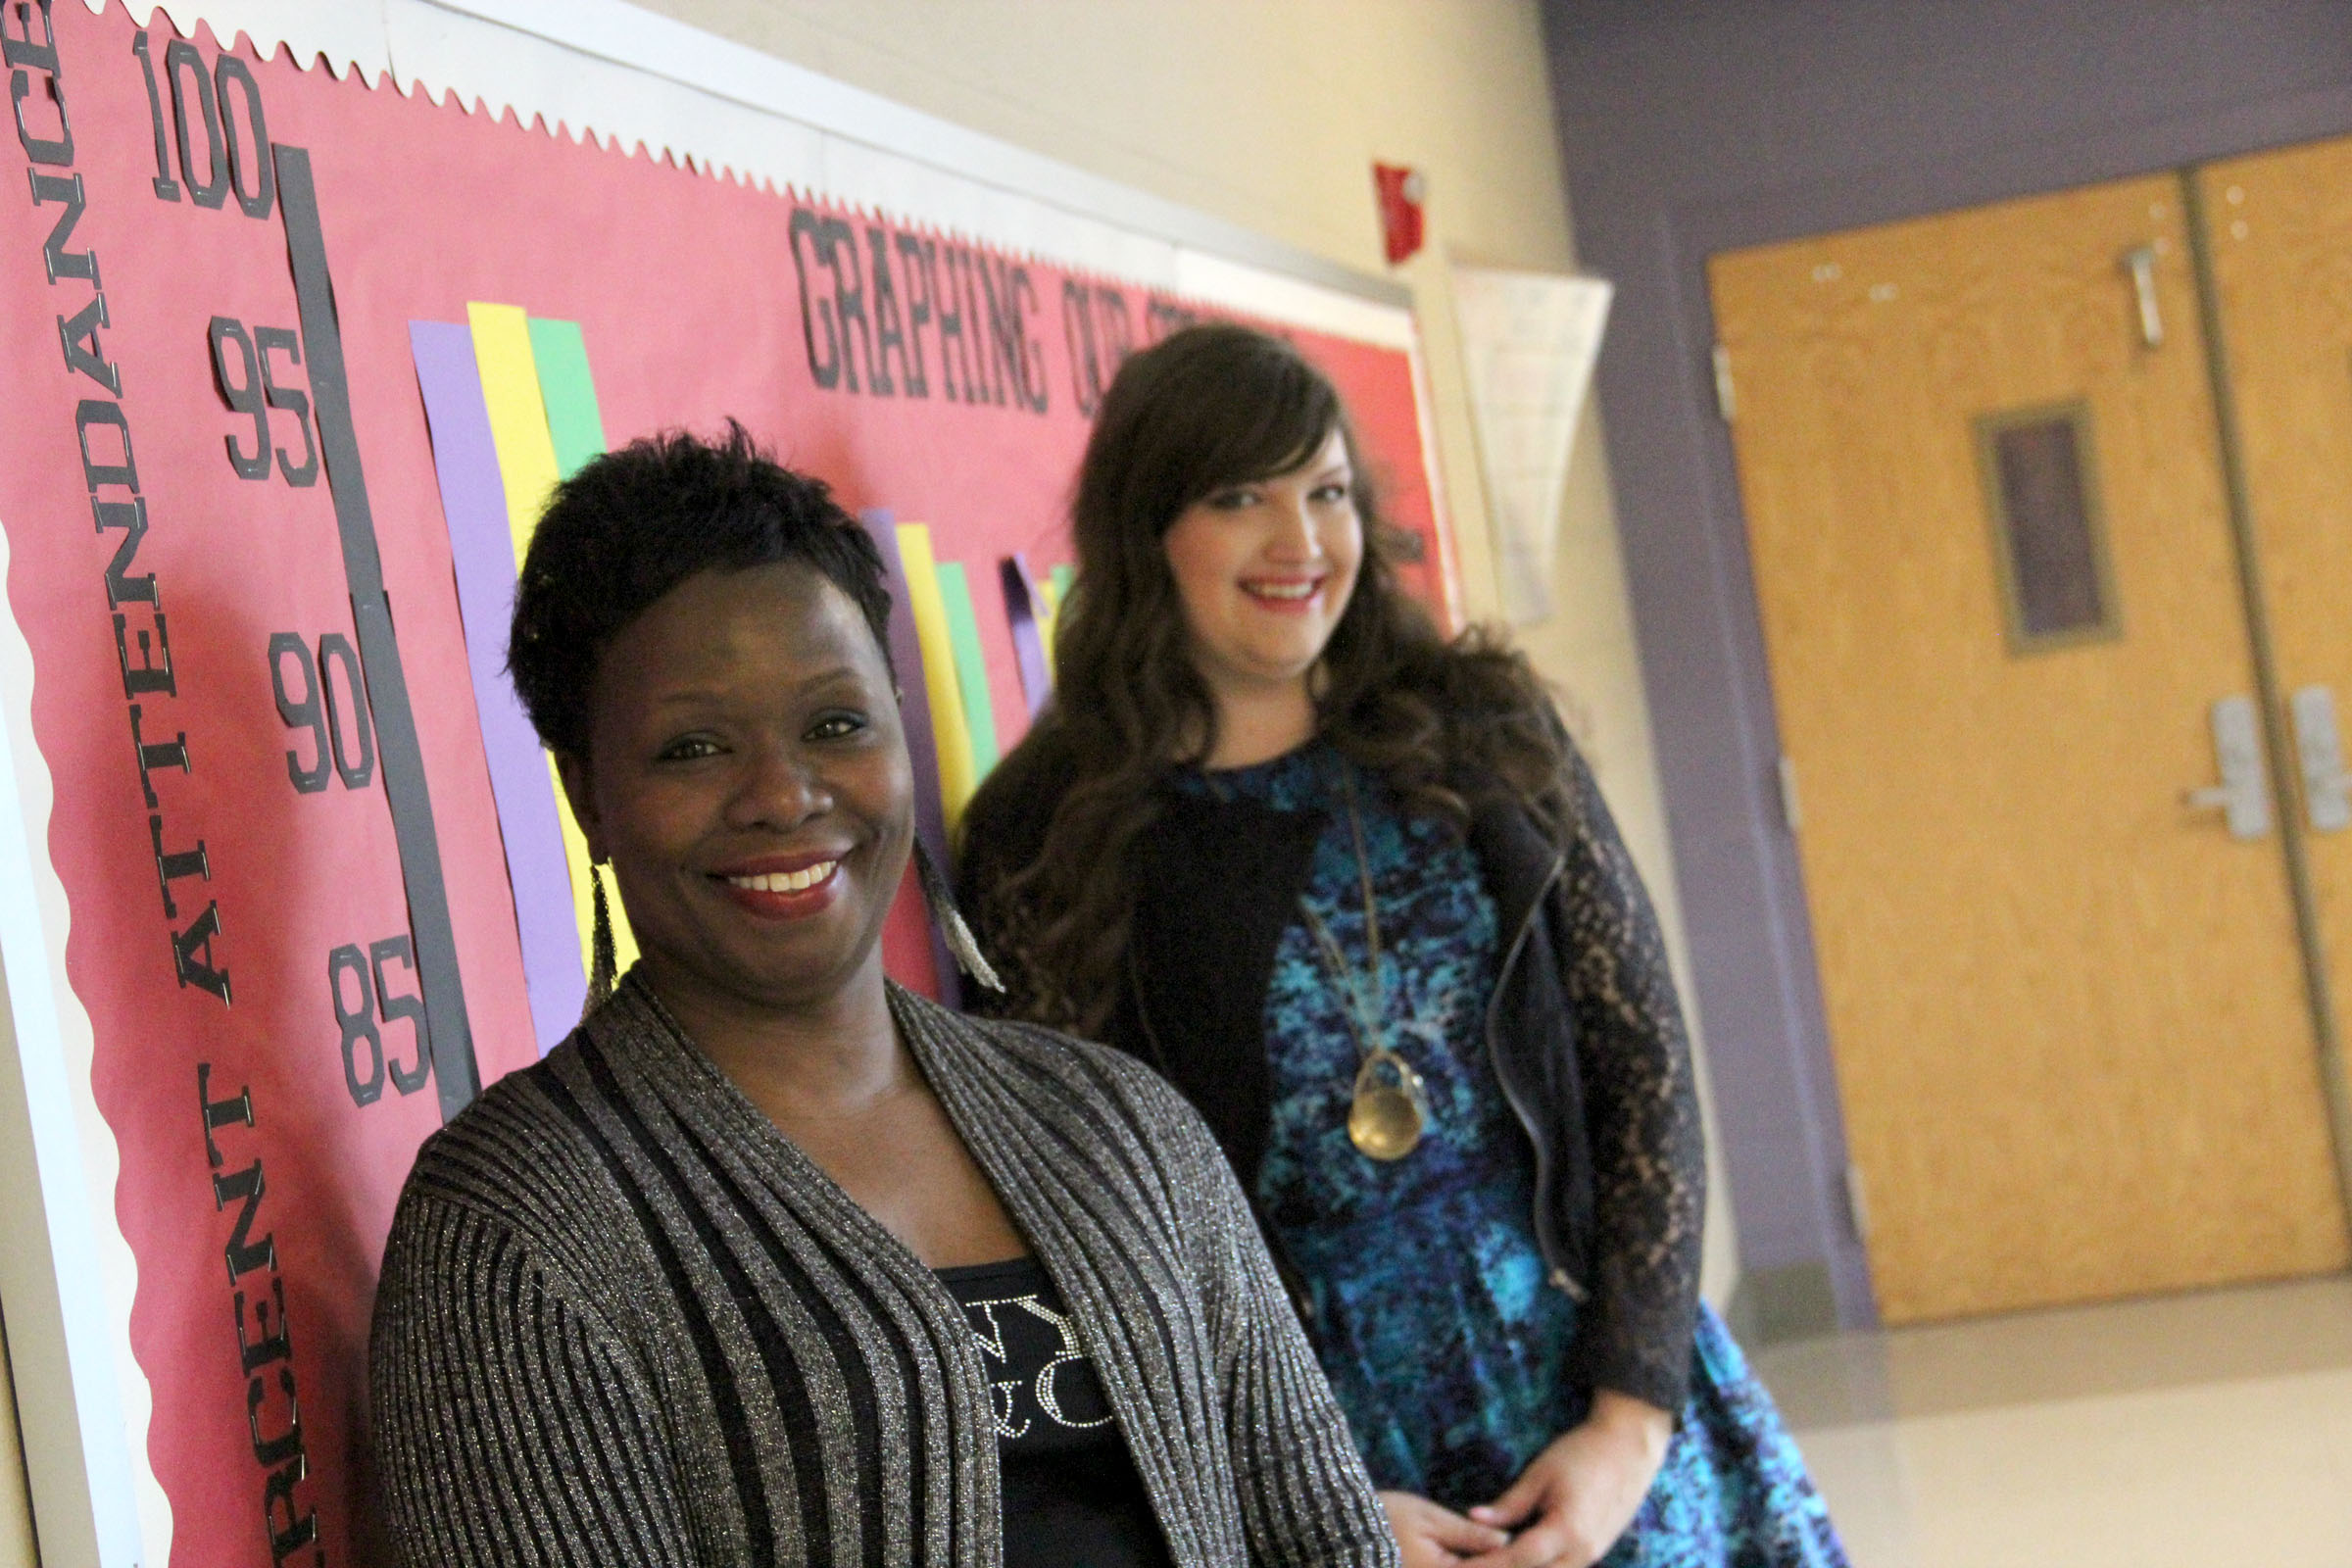 Westview Middle School Principal Valeska Hill and sixth grade math teacher Melissa Schut stand next to a bulletin board showing month attendance at the school.